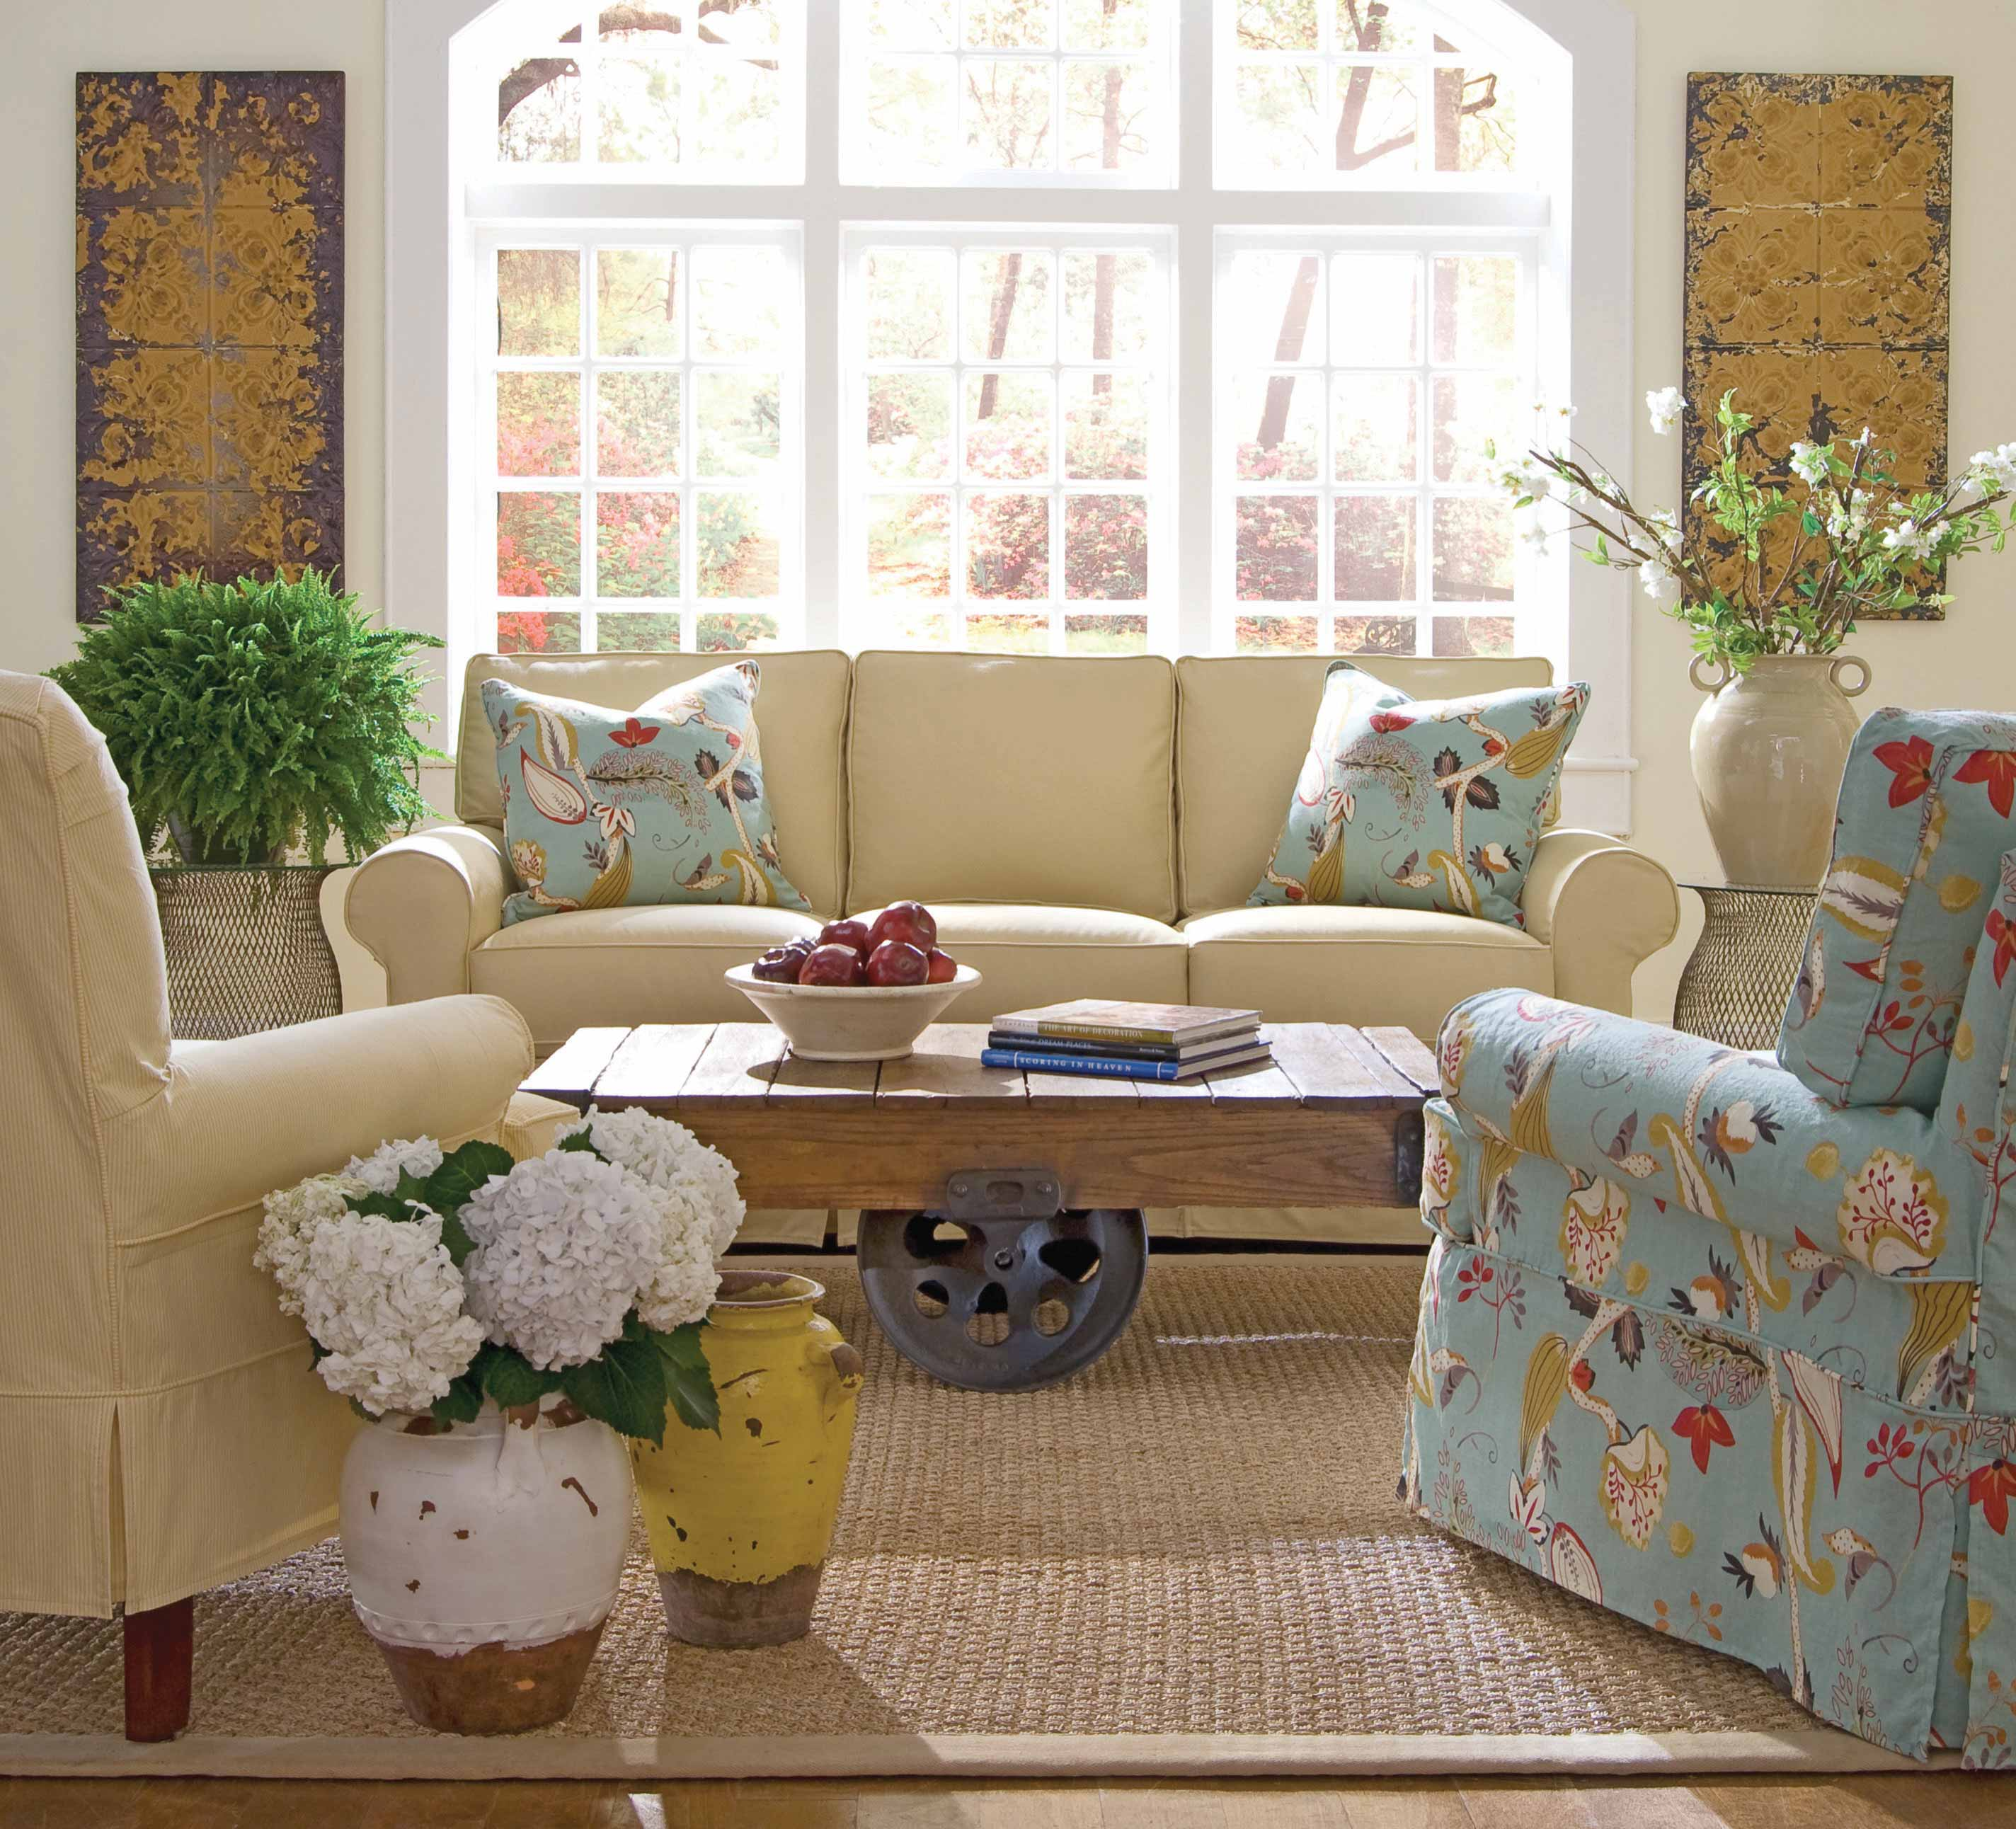 View Our Furniture Gallery And Award Winning Designs | Kendall Home  Furnishings